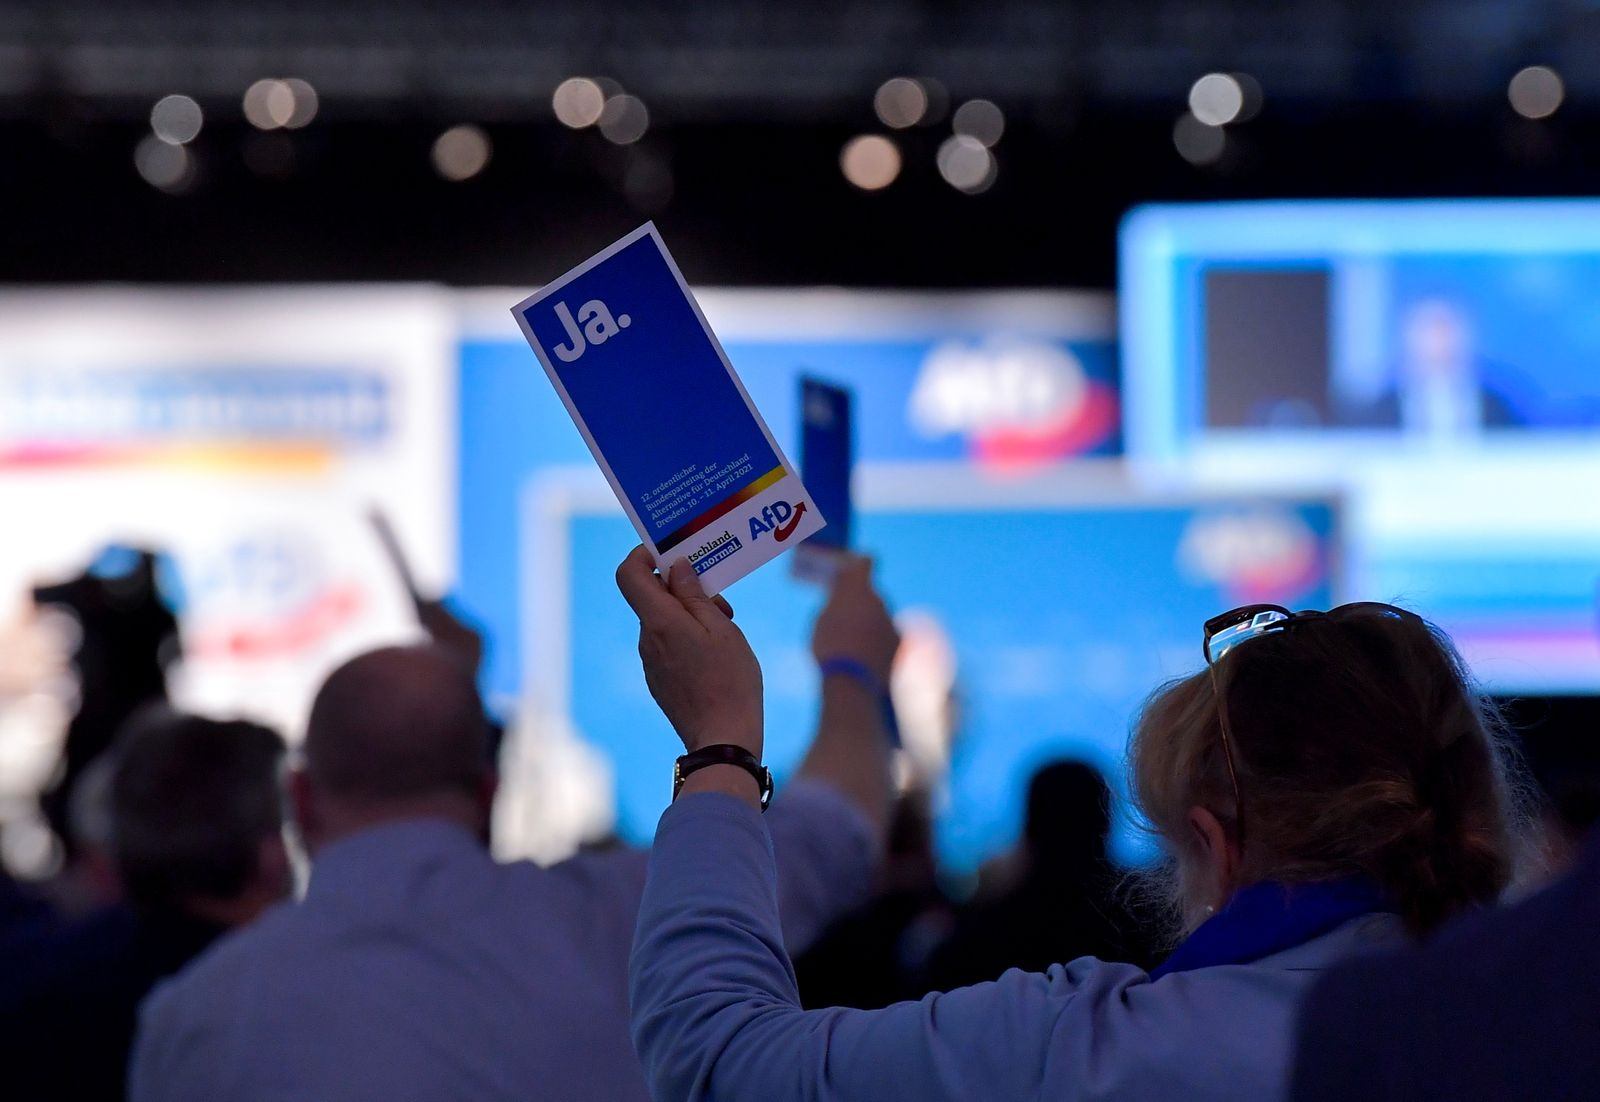 AFD party congress in Dresden